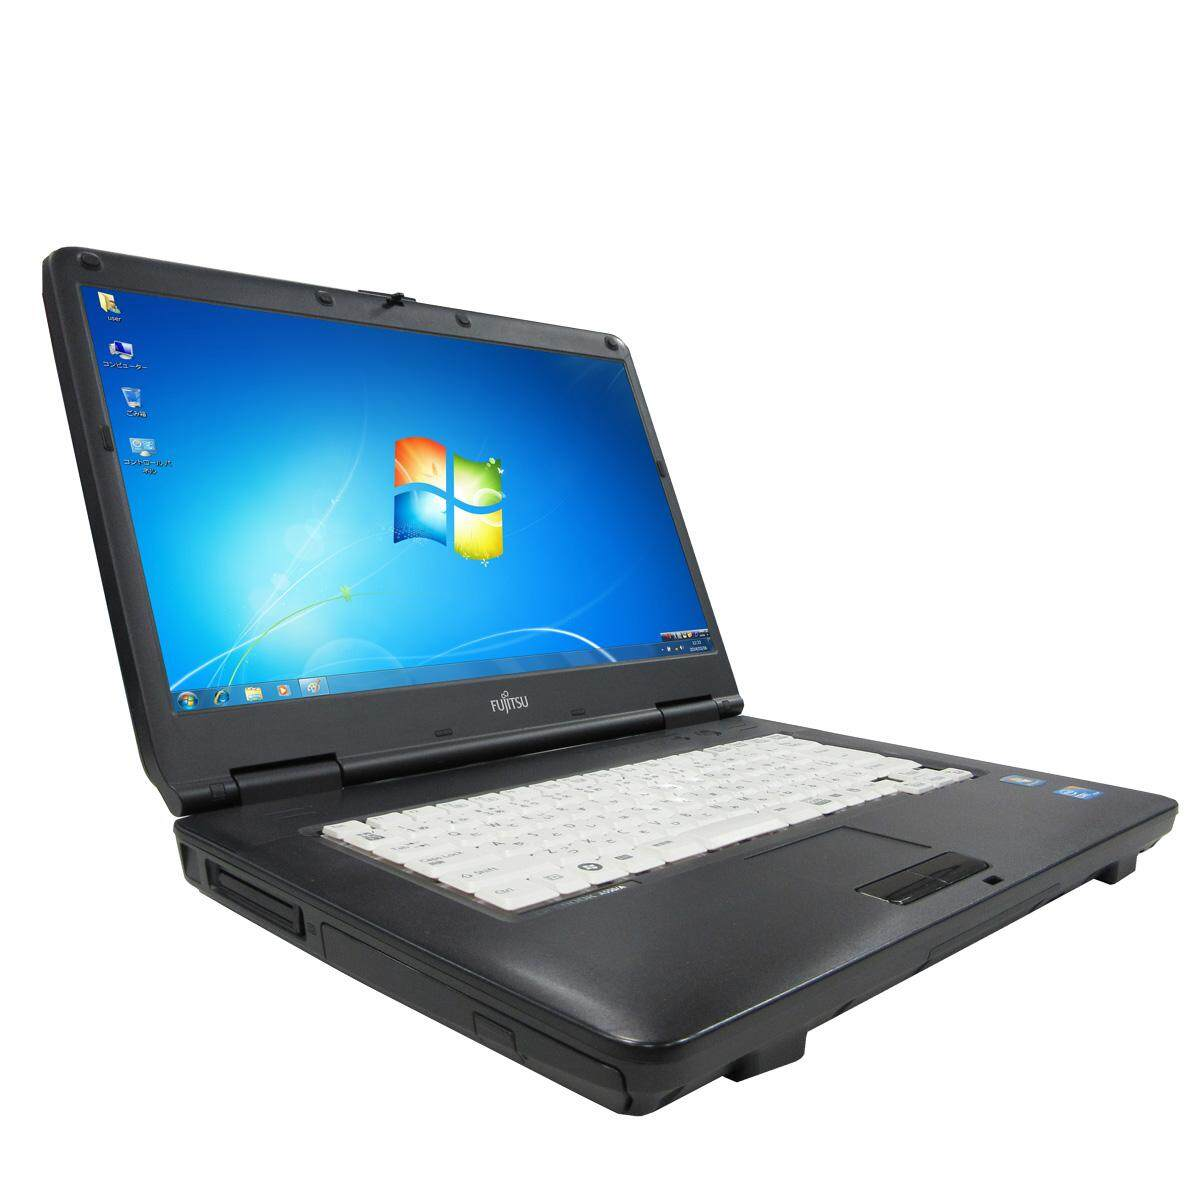 (REFURBISHED)FUJITSU LIFEBOOK A550 / INTEL CORE I5 - 1ST GENERATION / 4 GB DDR3 RAM / 160 GB SATA HDD / 15.6 INCH LCD / 1 YearWarranty, Free Mouse Malaysia